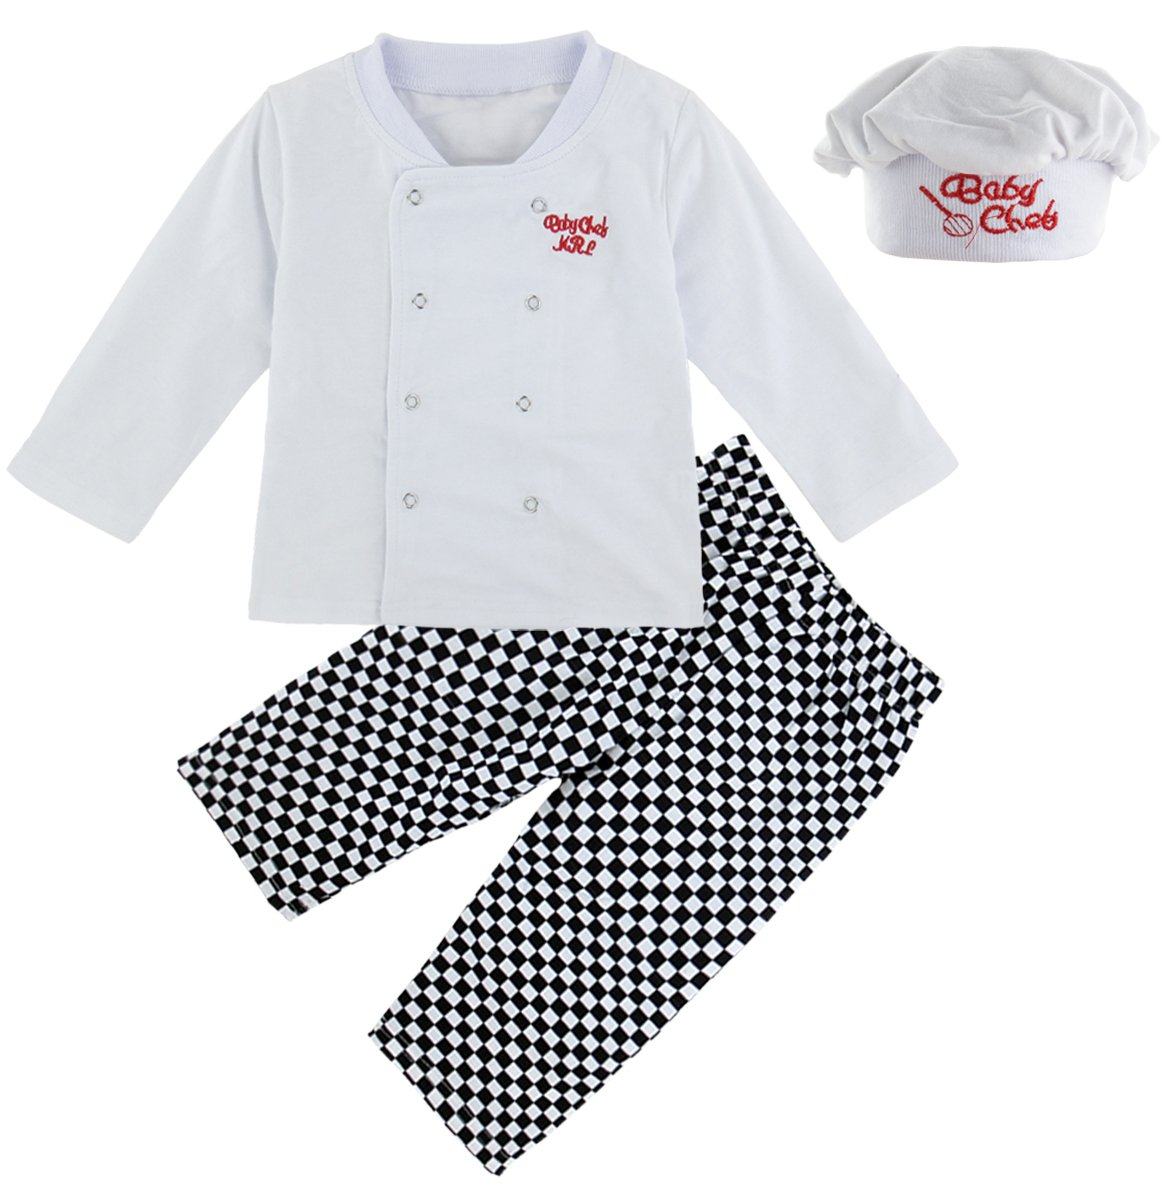 Mombebe Baby Boys' 3 Pieces Chef Long Clothing Set with Hat (0-6 Months, Chef) by Mombebe (Image #1)